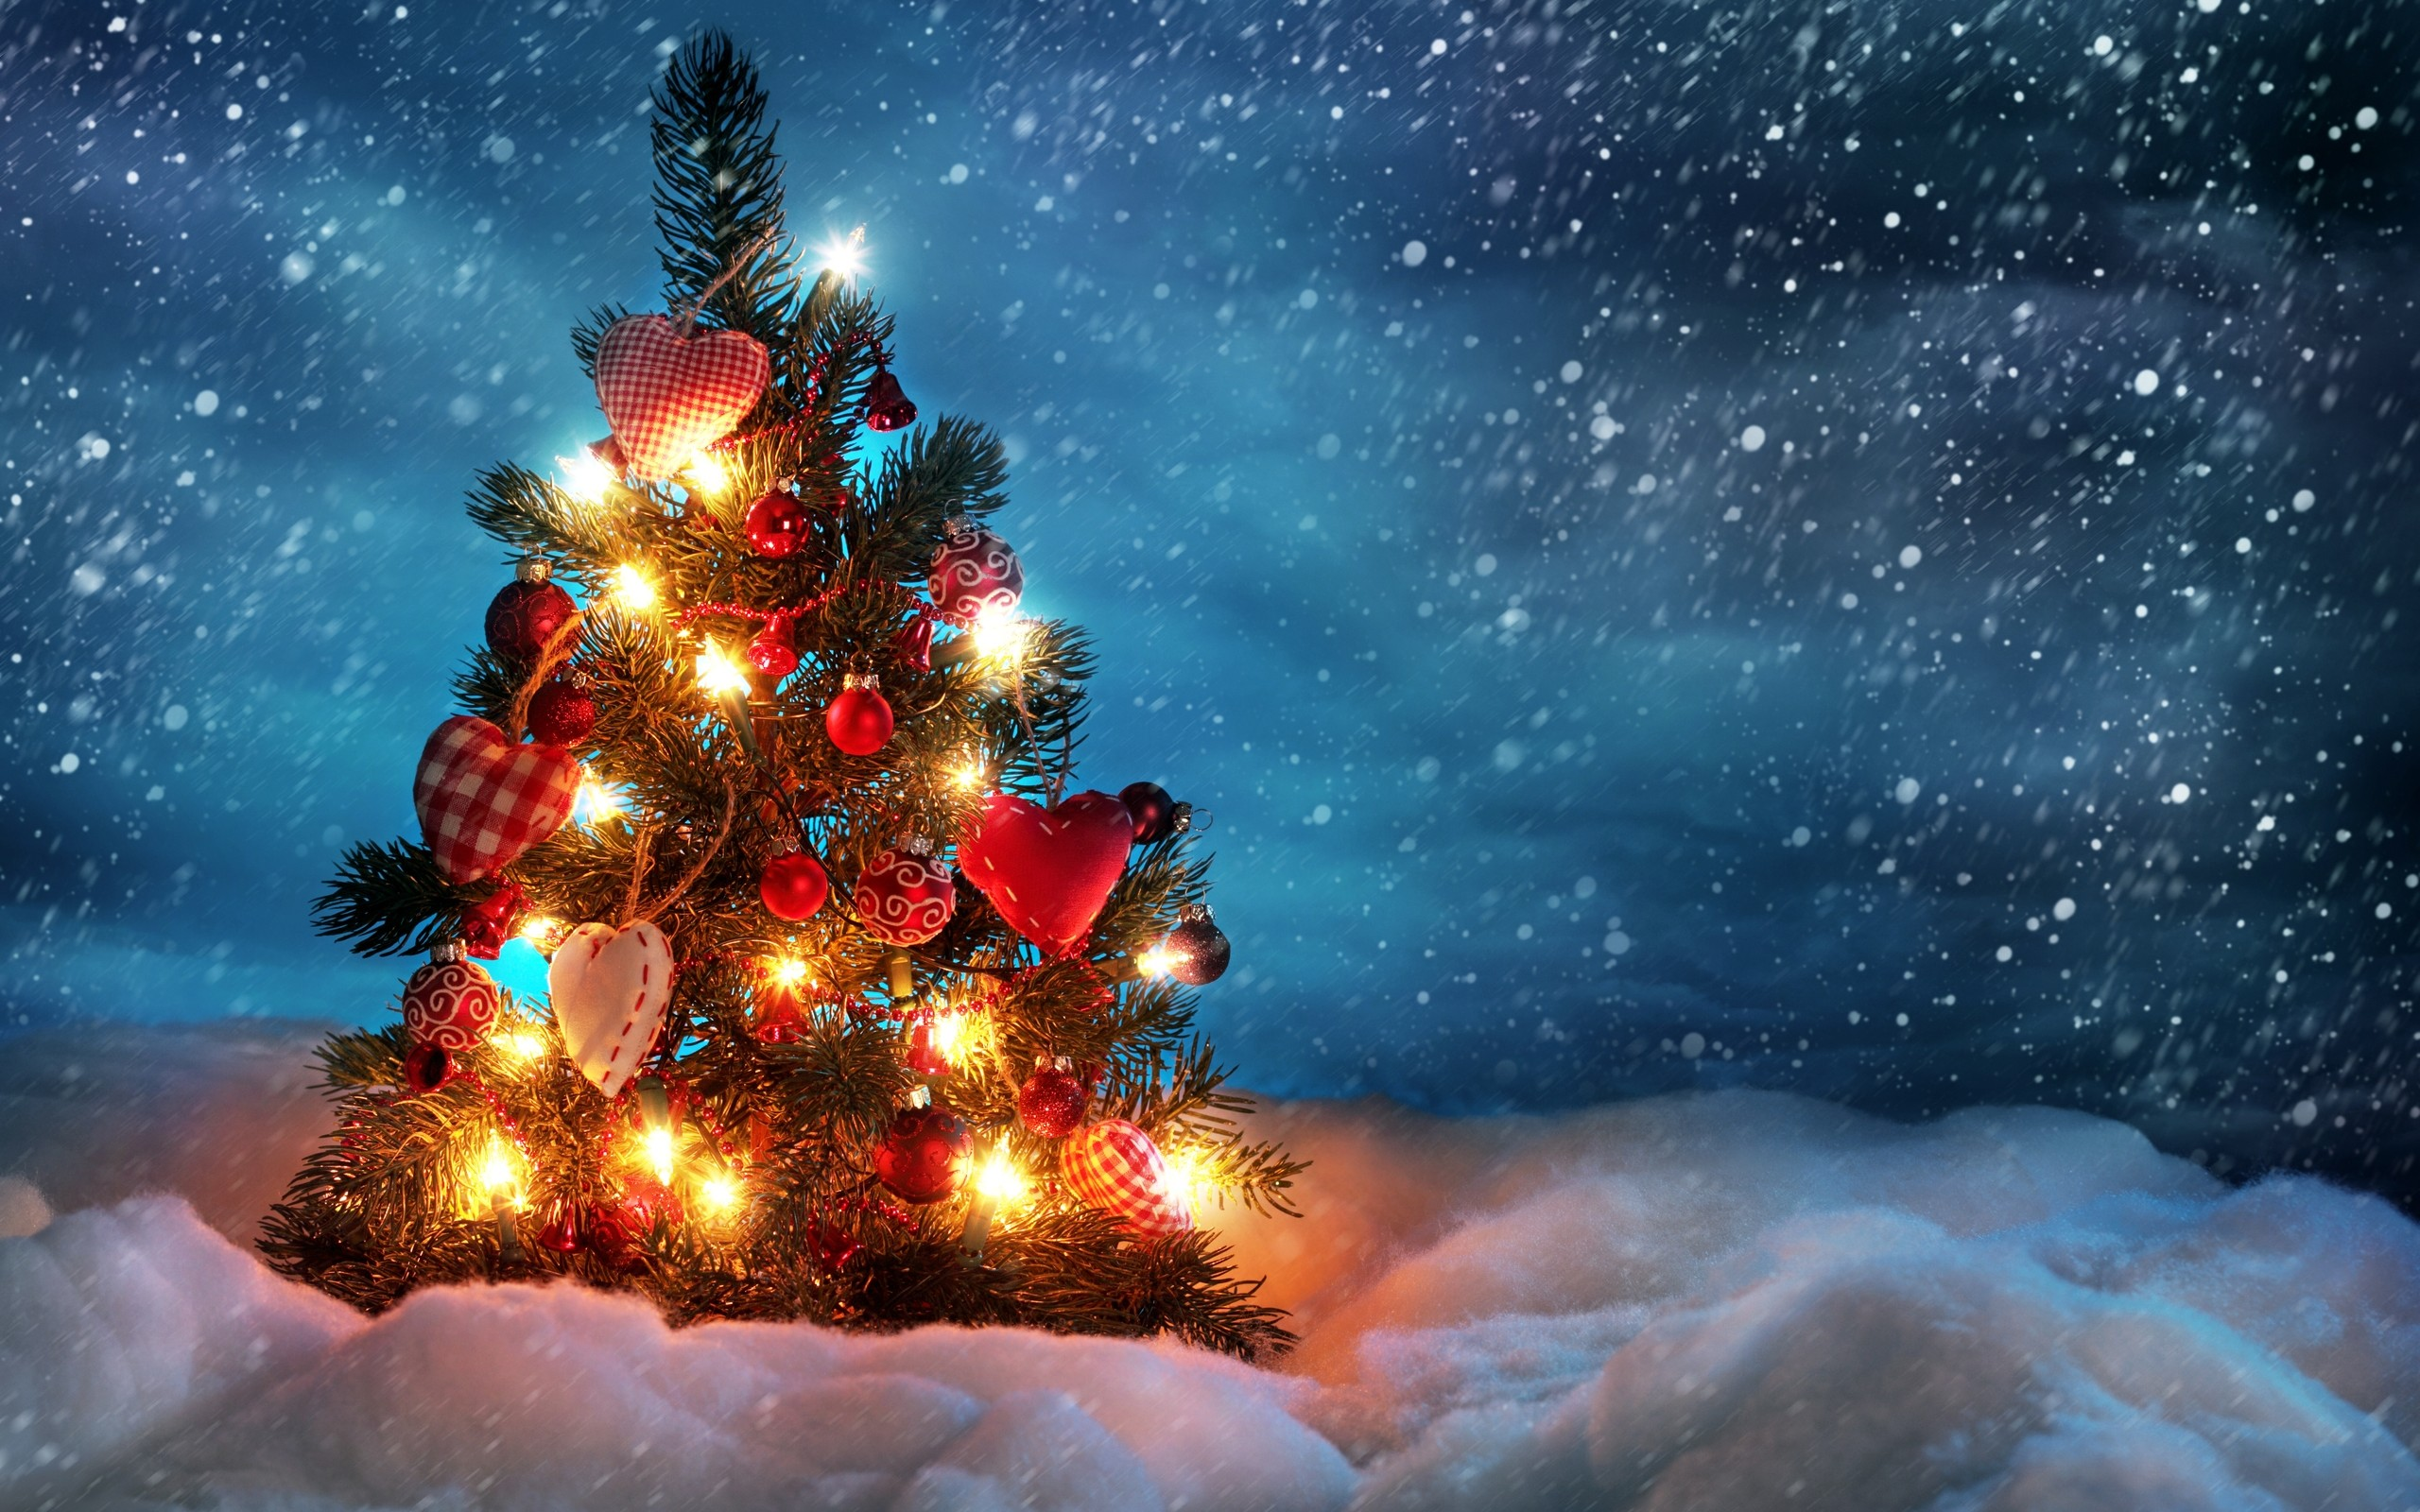 Res: 2560x1600, Download Beautiful Christmas Tree Wallpapers | HD Wallpapers for free in HD  Resolution. Christmas hd wallpapers was posted at November 15, 2015.